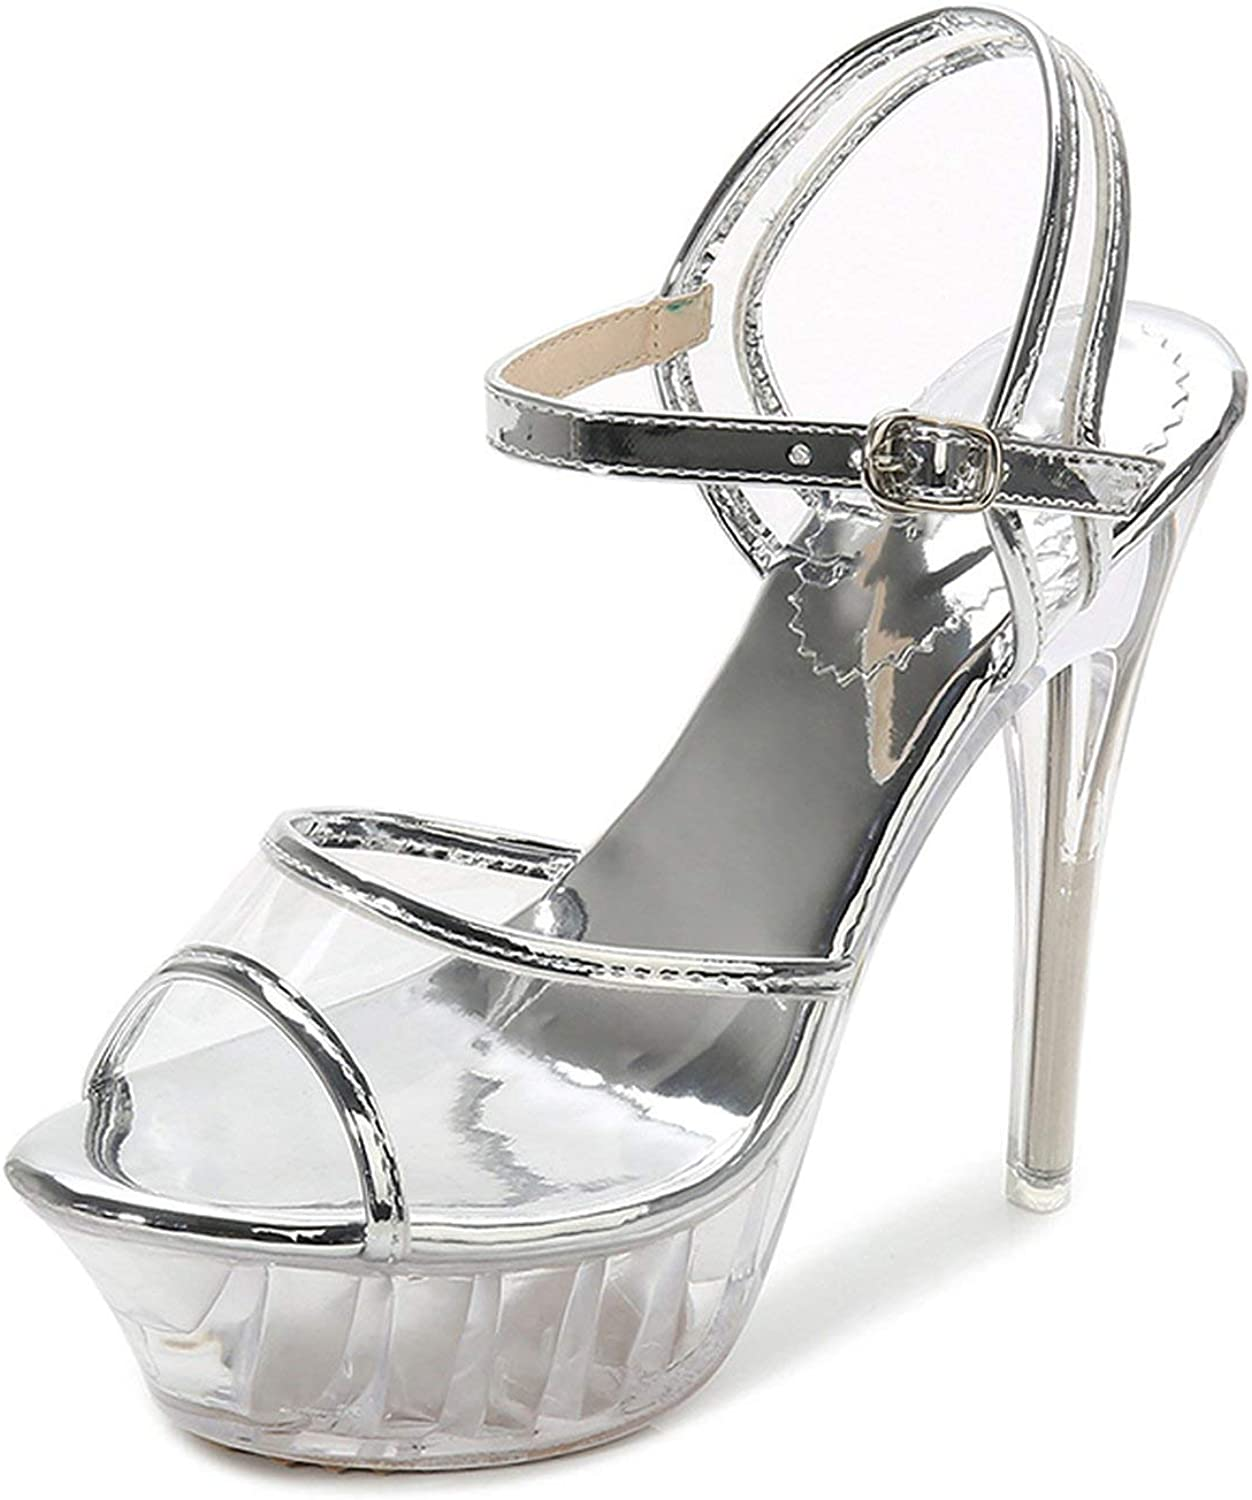 High Heels Womens Sandals Transparent Crystal Heel Model T Stage Sexy Lady Heeled shoes 35-43,14-75Silver,13